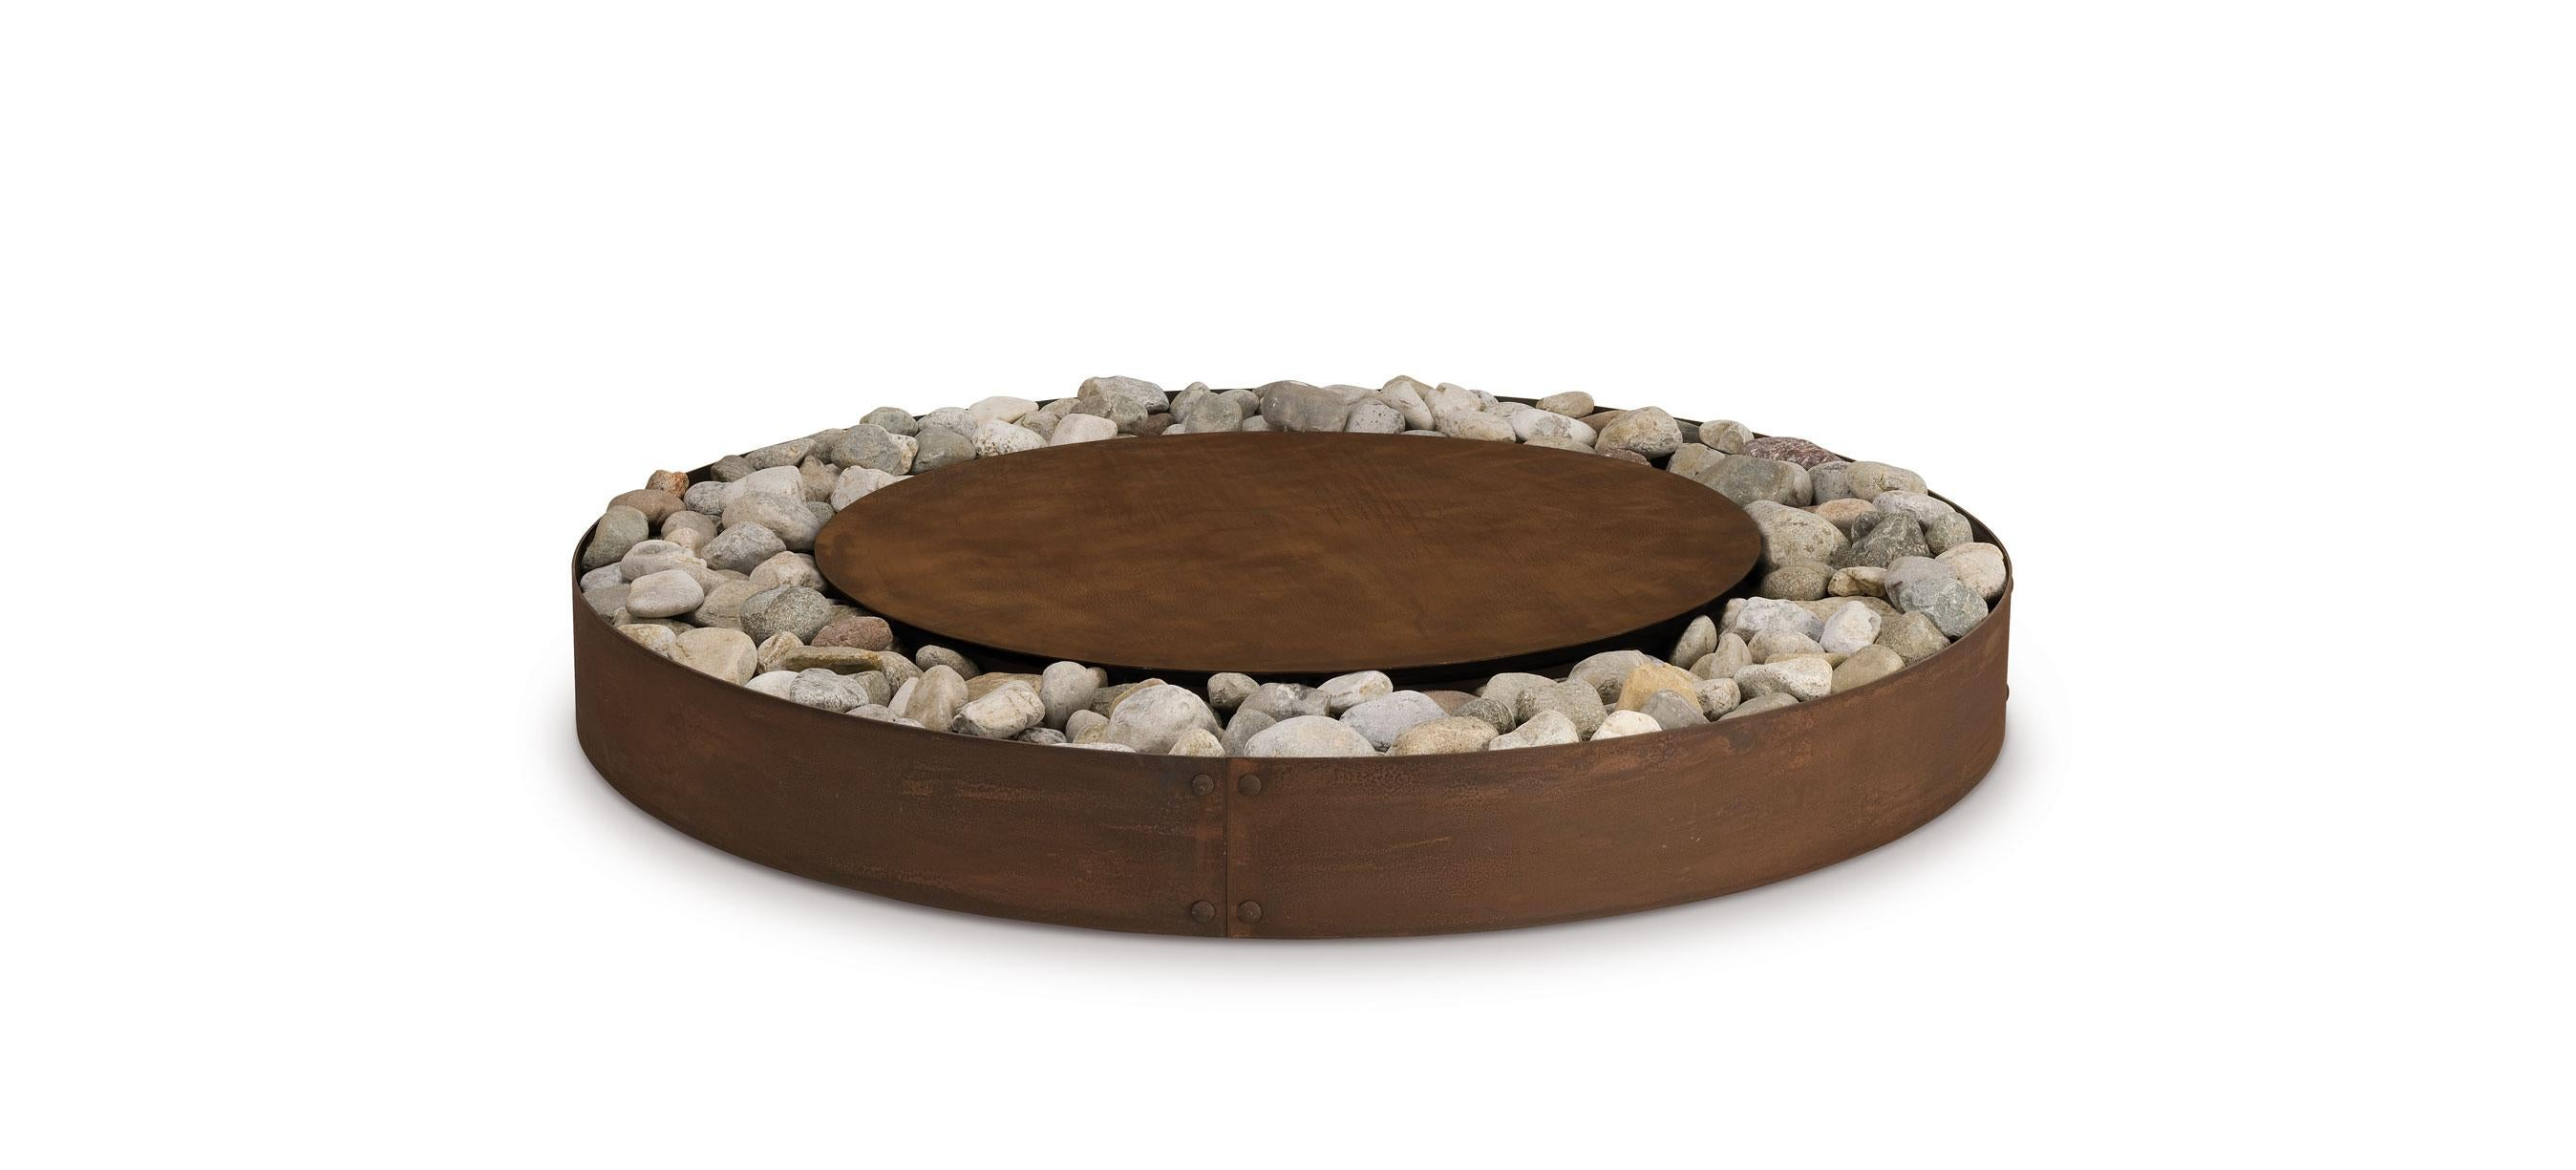 Zen Fire Pit by AK47 Design For Sale at 1stdibs